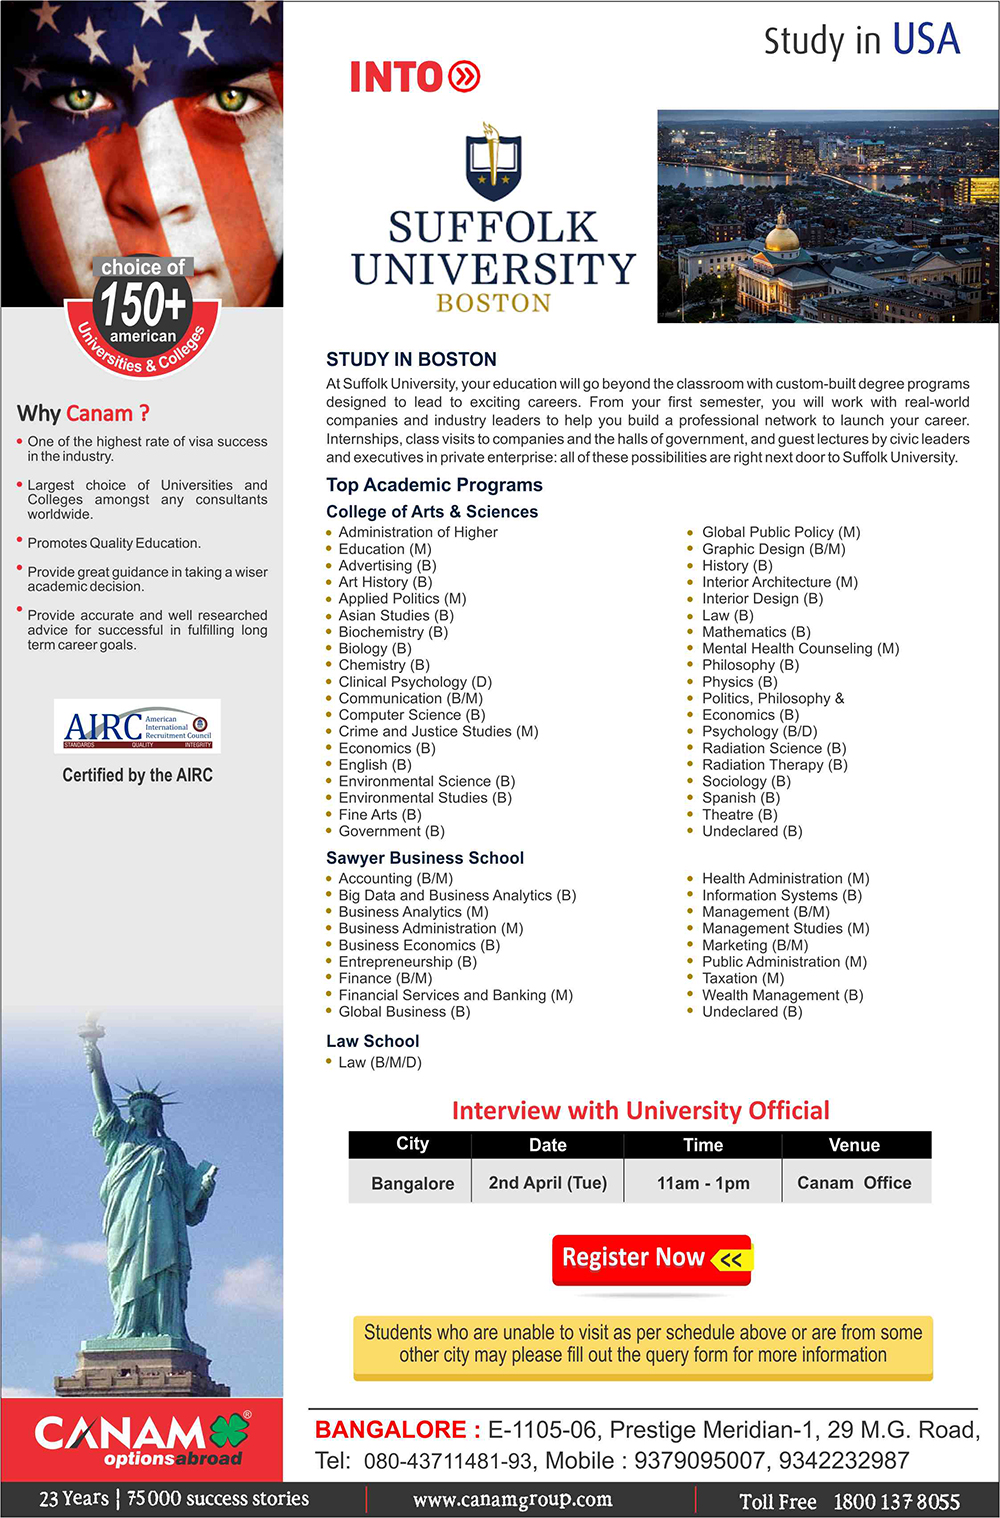 study-in-suffolk-university